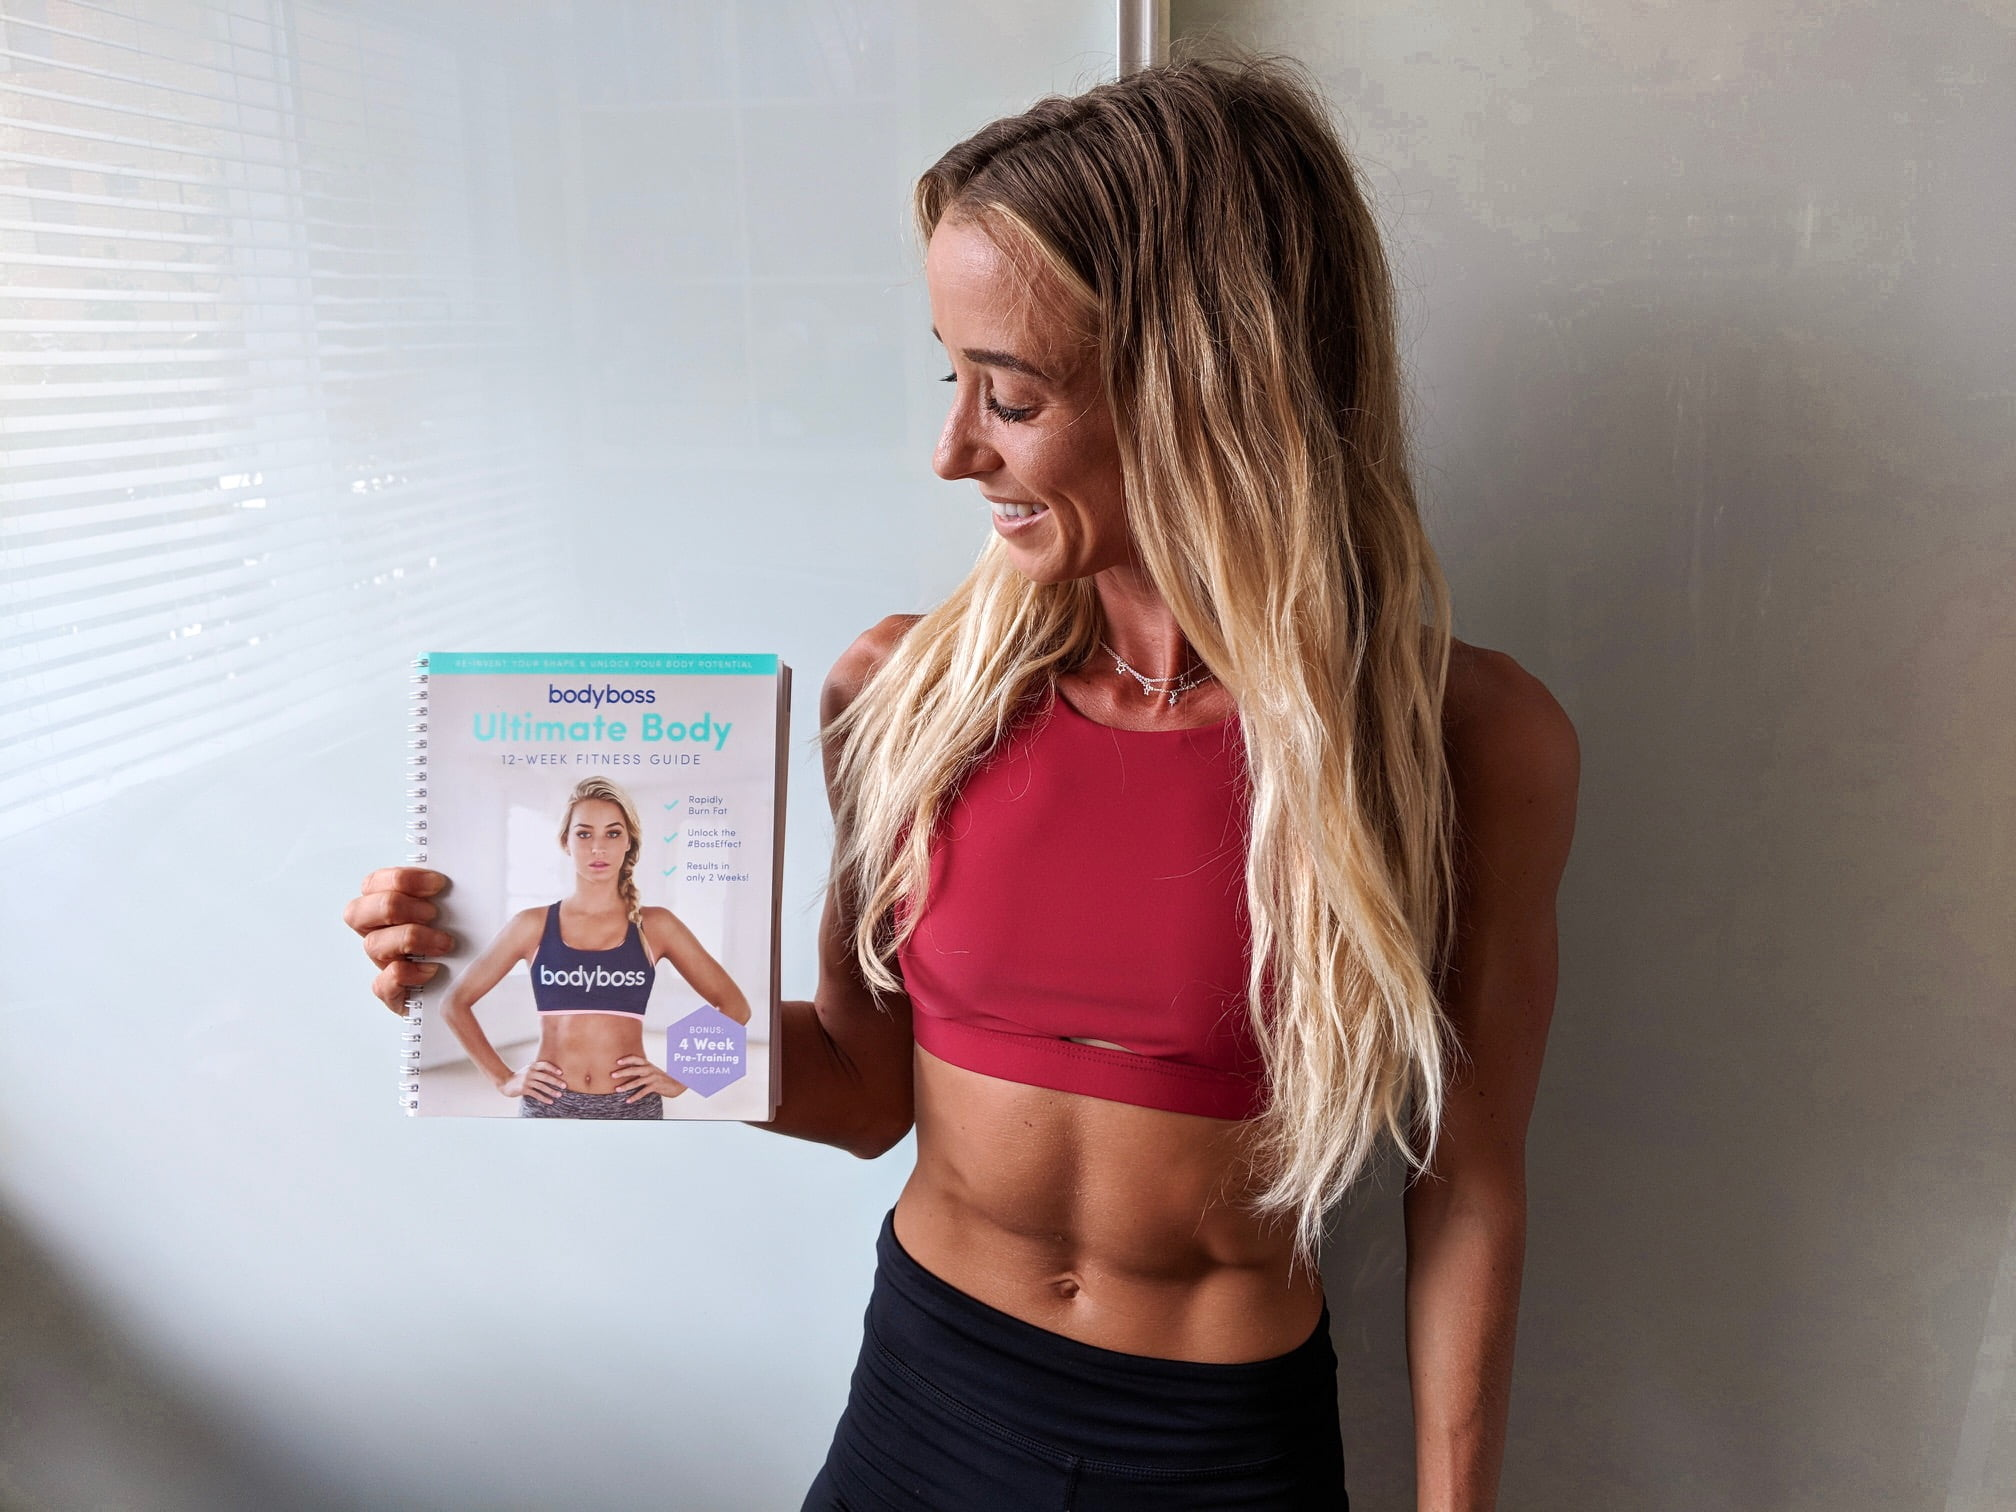 25bd2f6a996 ... The BodyBoss Ultimate Body Fitness Guide. Over the 12 weeks it will  help you form new